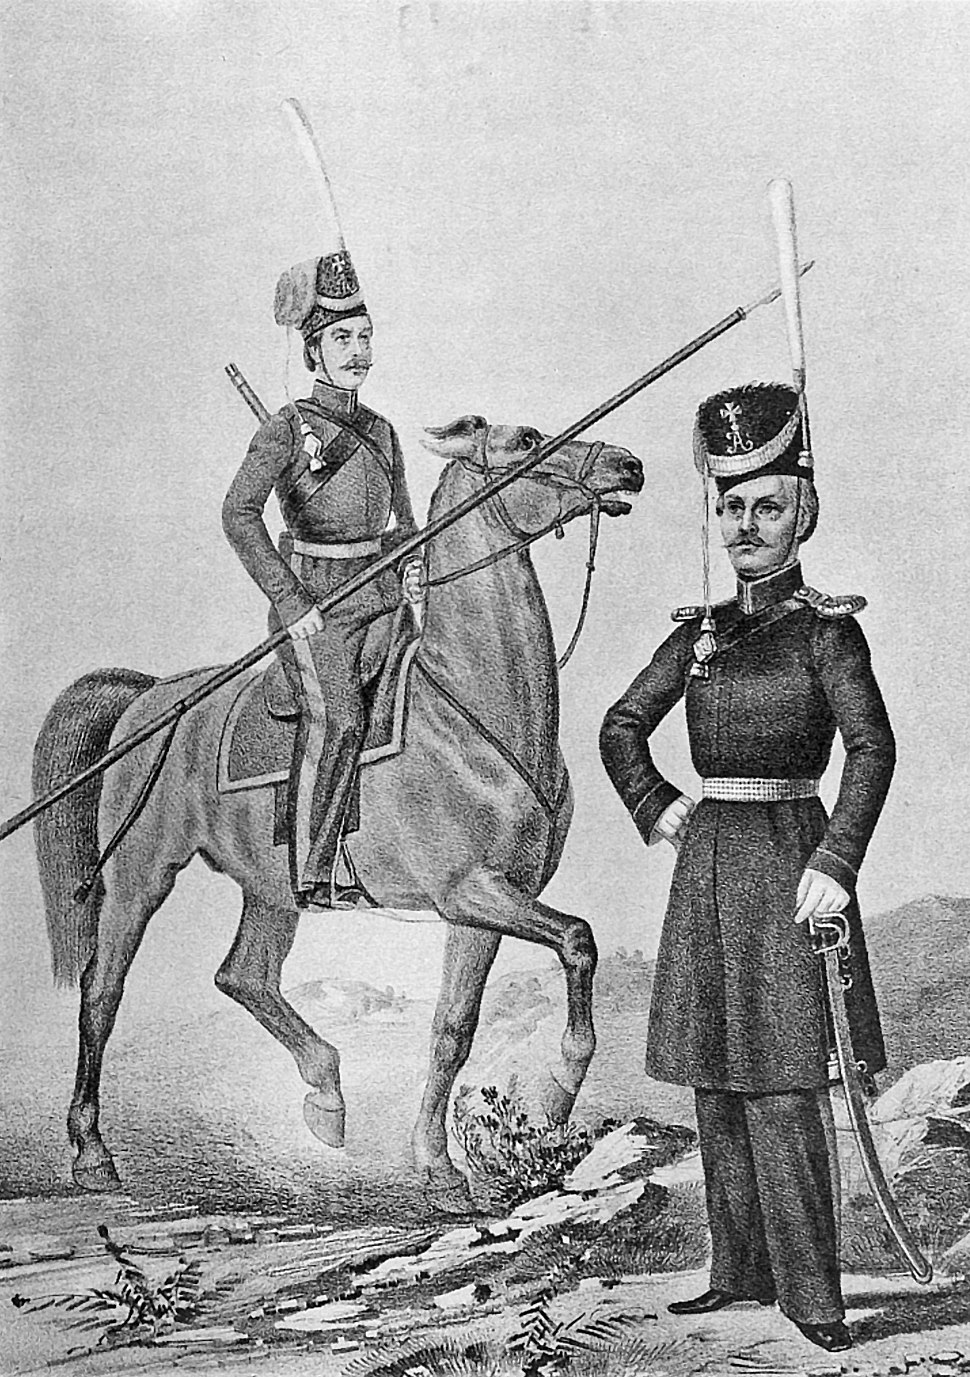 18 2530 Book illustrations of Historical description of the clothes and weapons of Russian troops